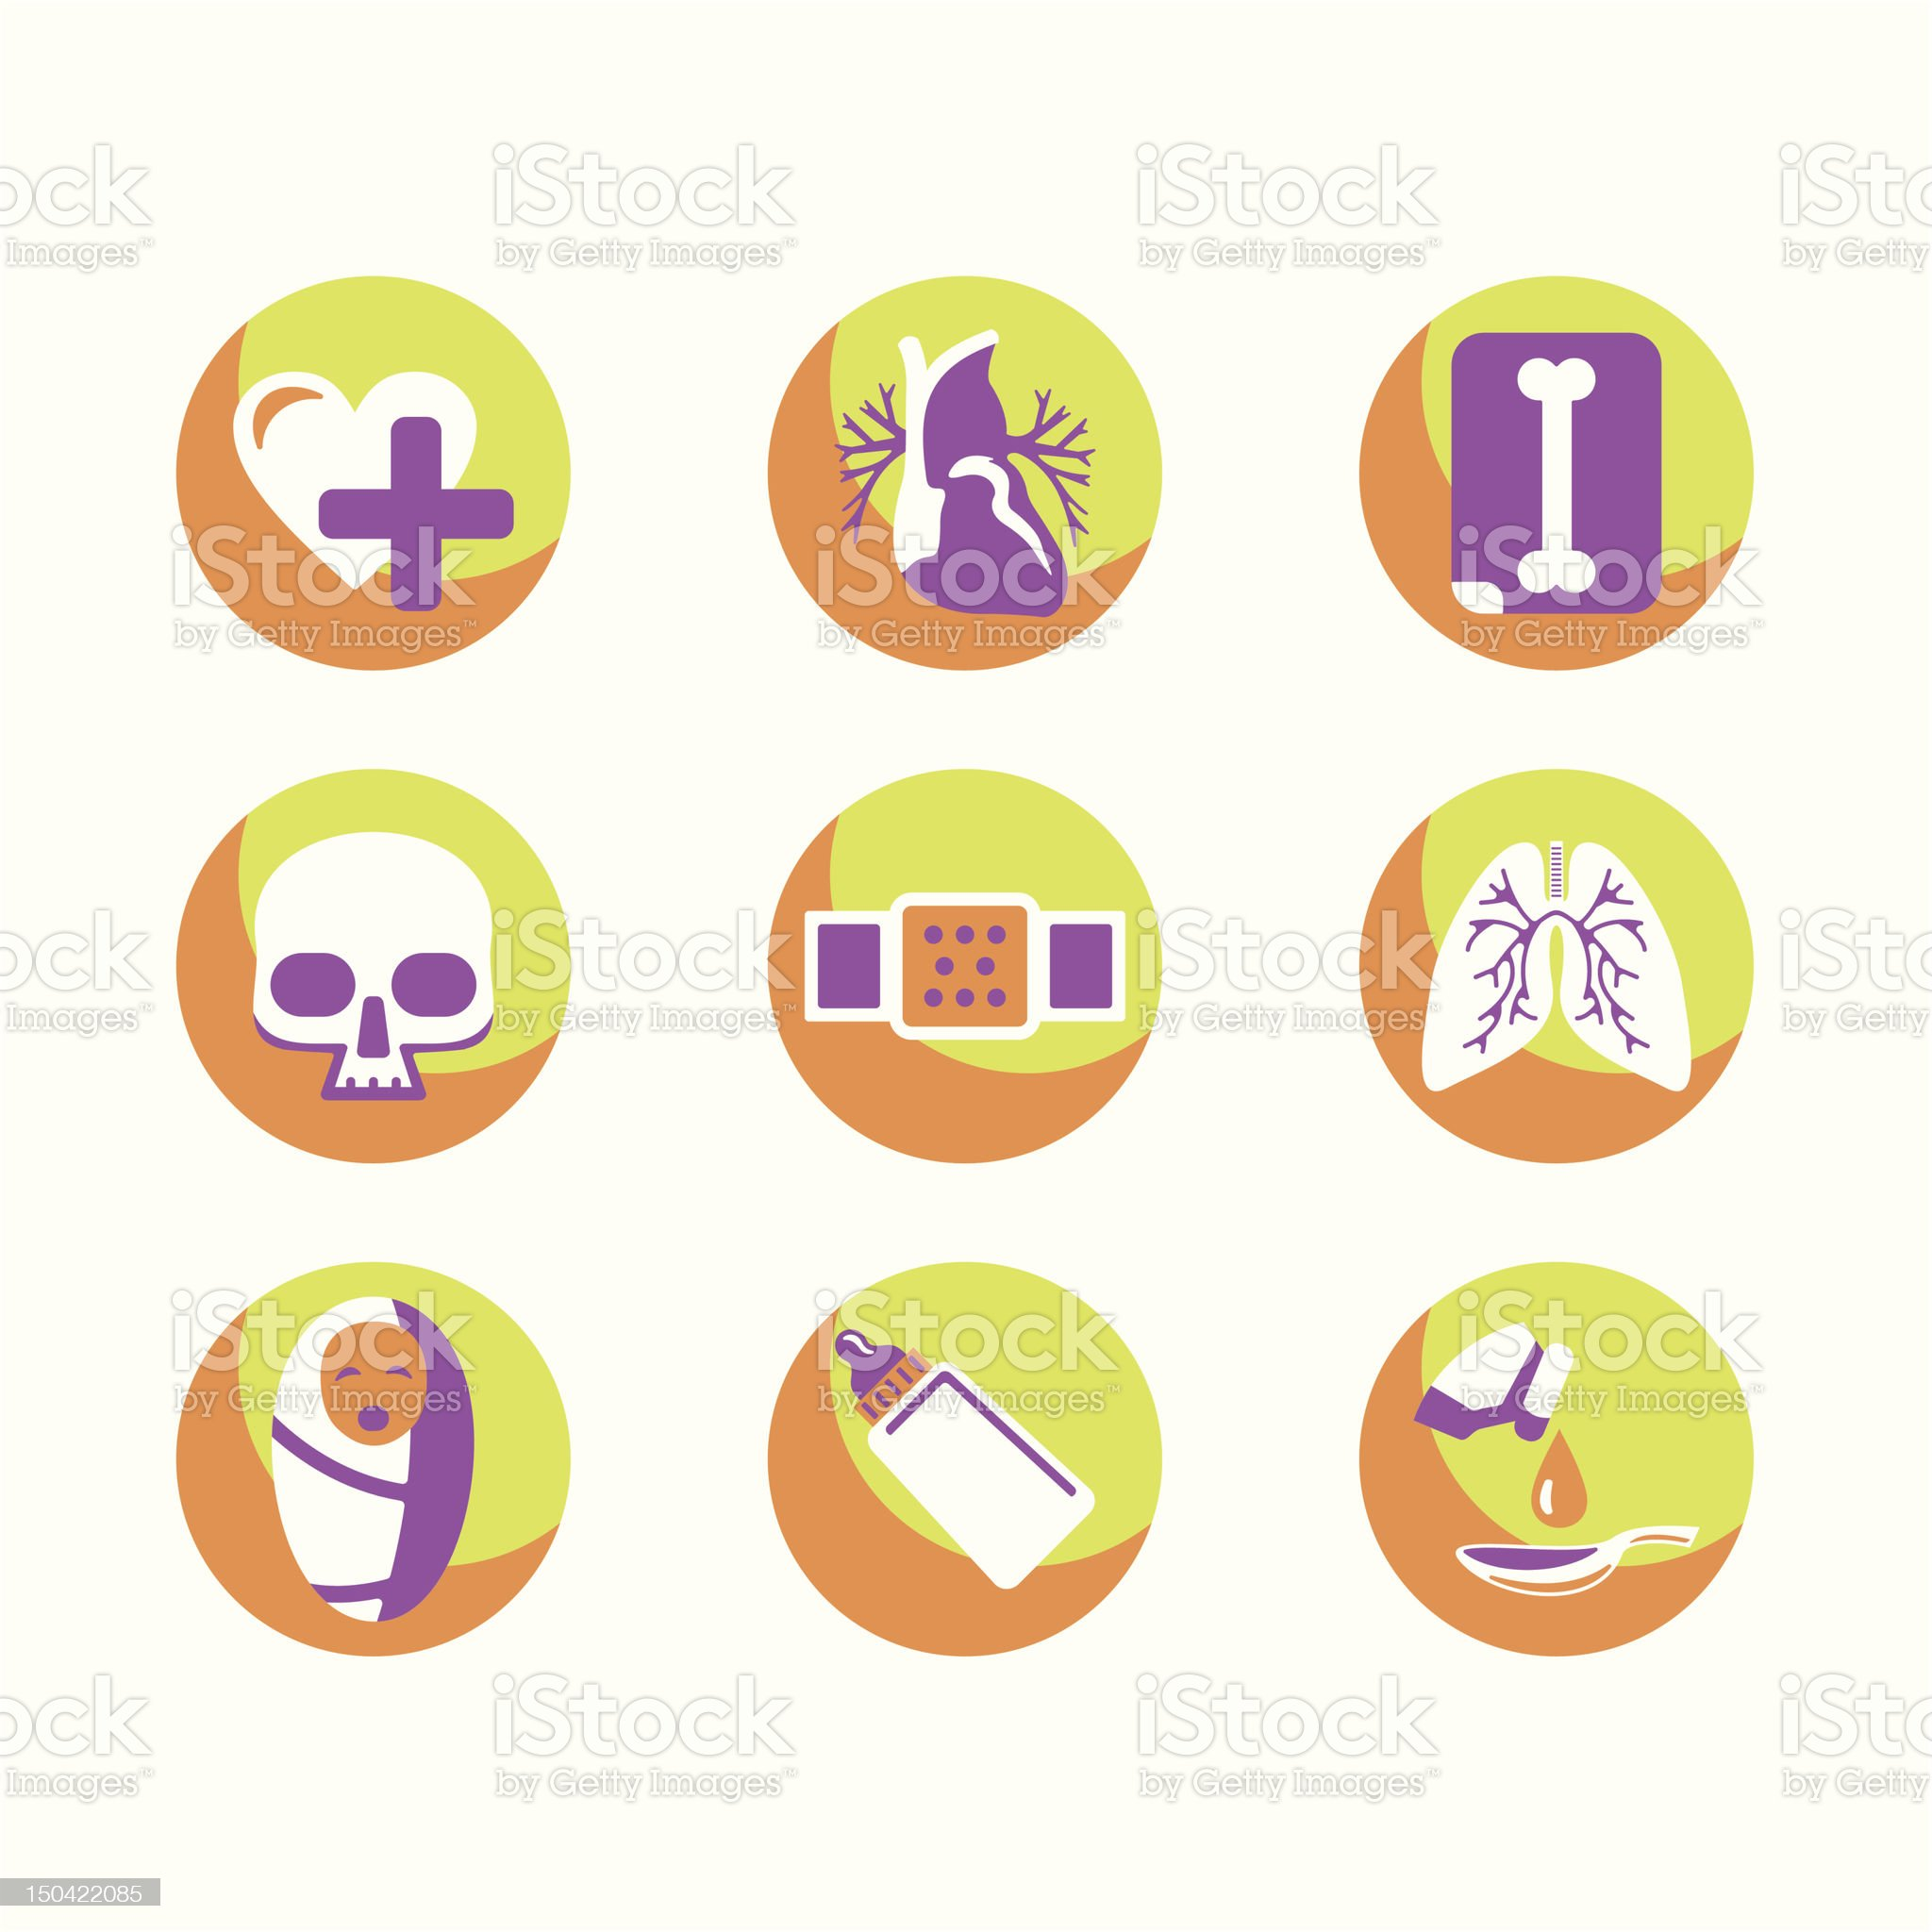 Medical Icons Series royalty-free stock vector art